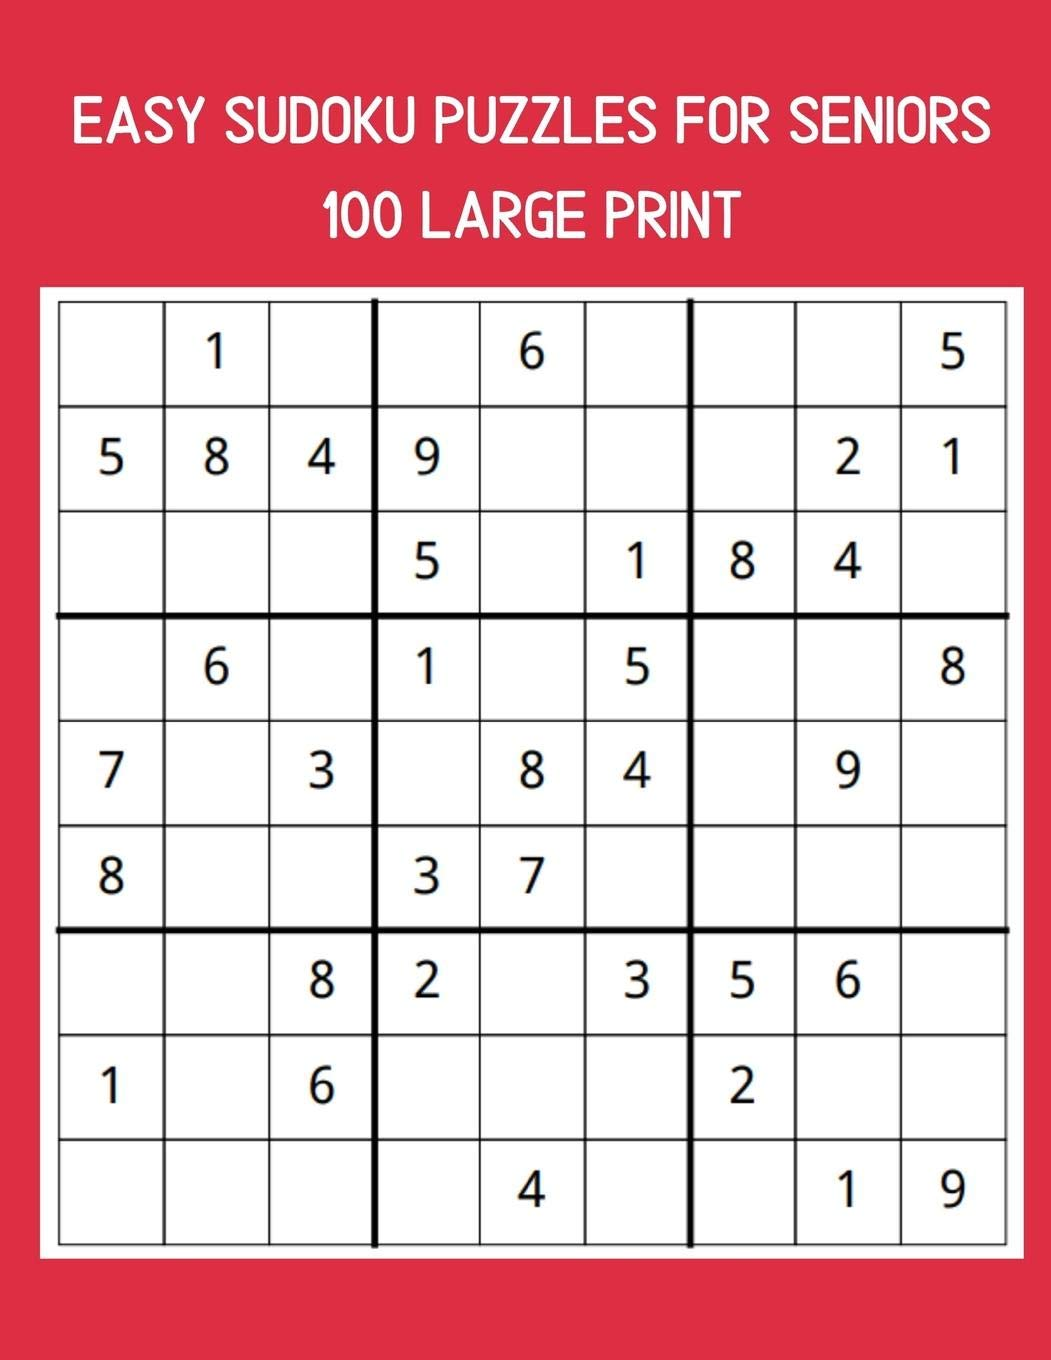 100 Easy Sudoku Puzzles For Seniors A Large Print Puzzle Book For Adults Publishing 8333 9781080588534 Amazon Com Books